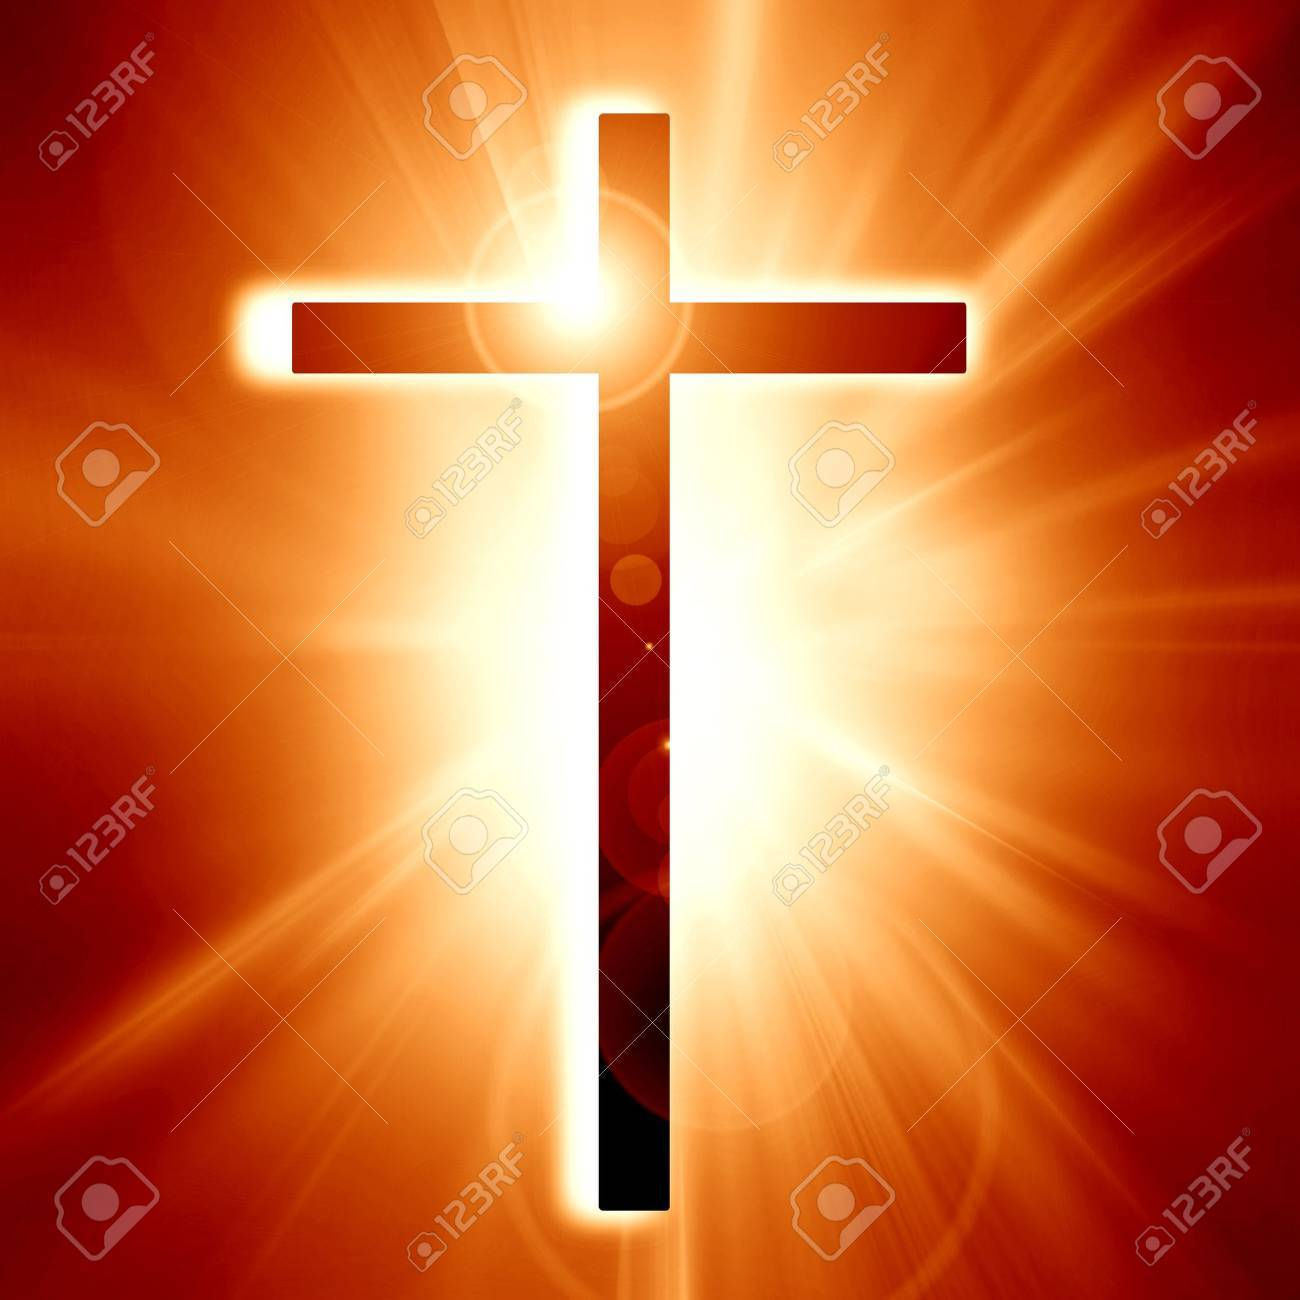 Christianity representation with the symbol of a cross Stock Photo - 14949339